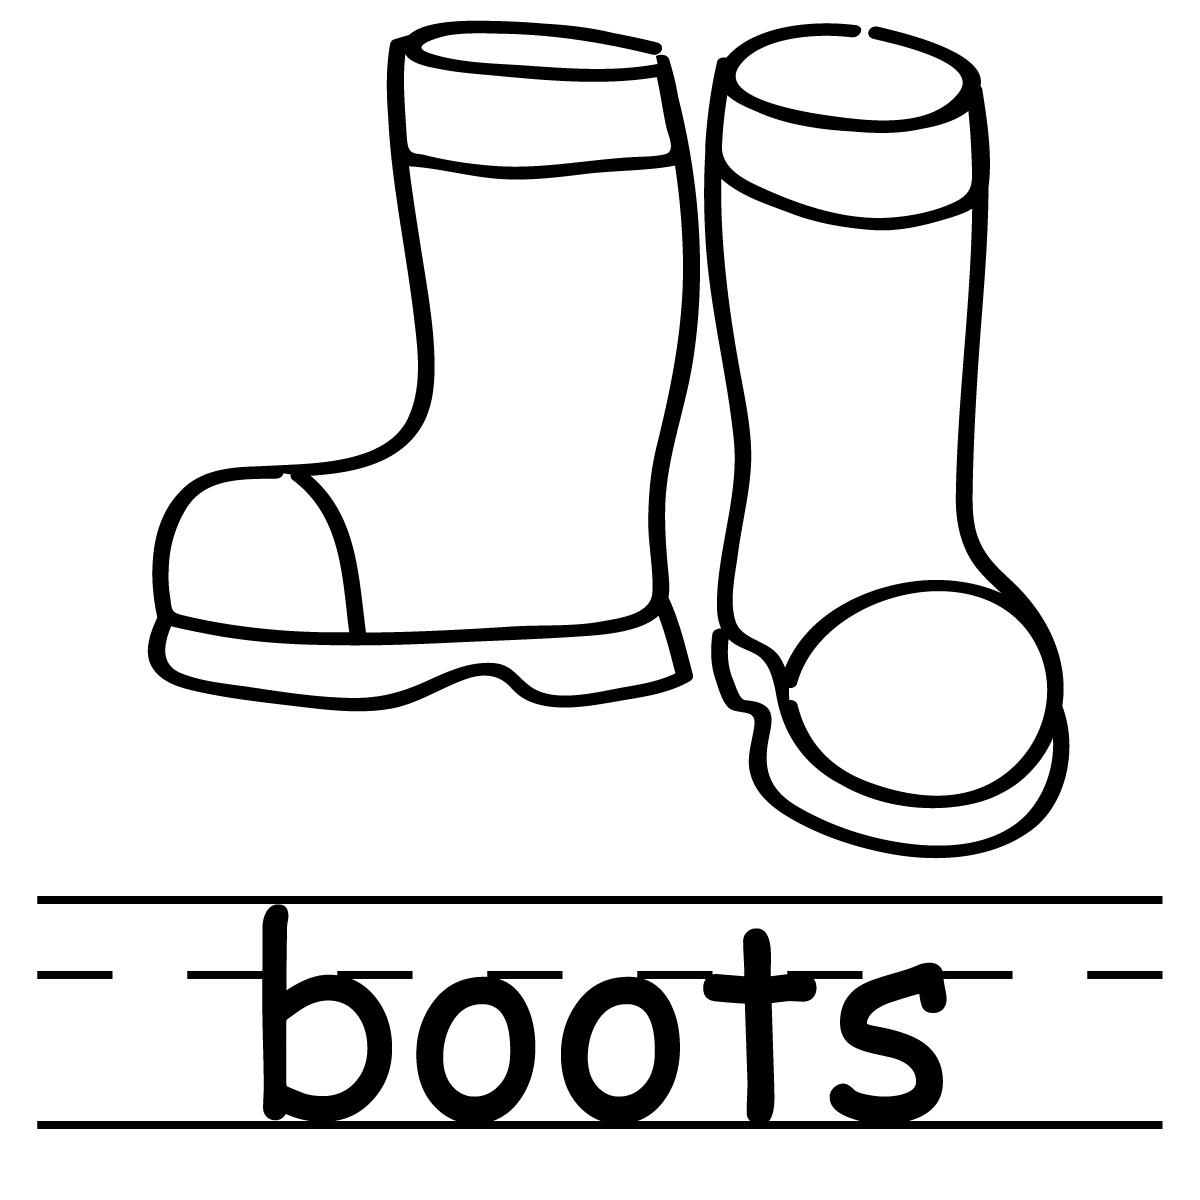 Clip Art Boots Clip Art boots free clipart kid cowboy black and white panda clipart